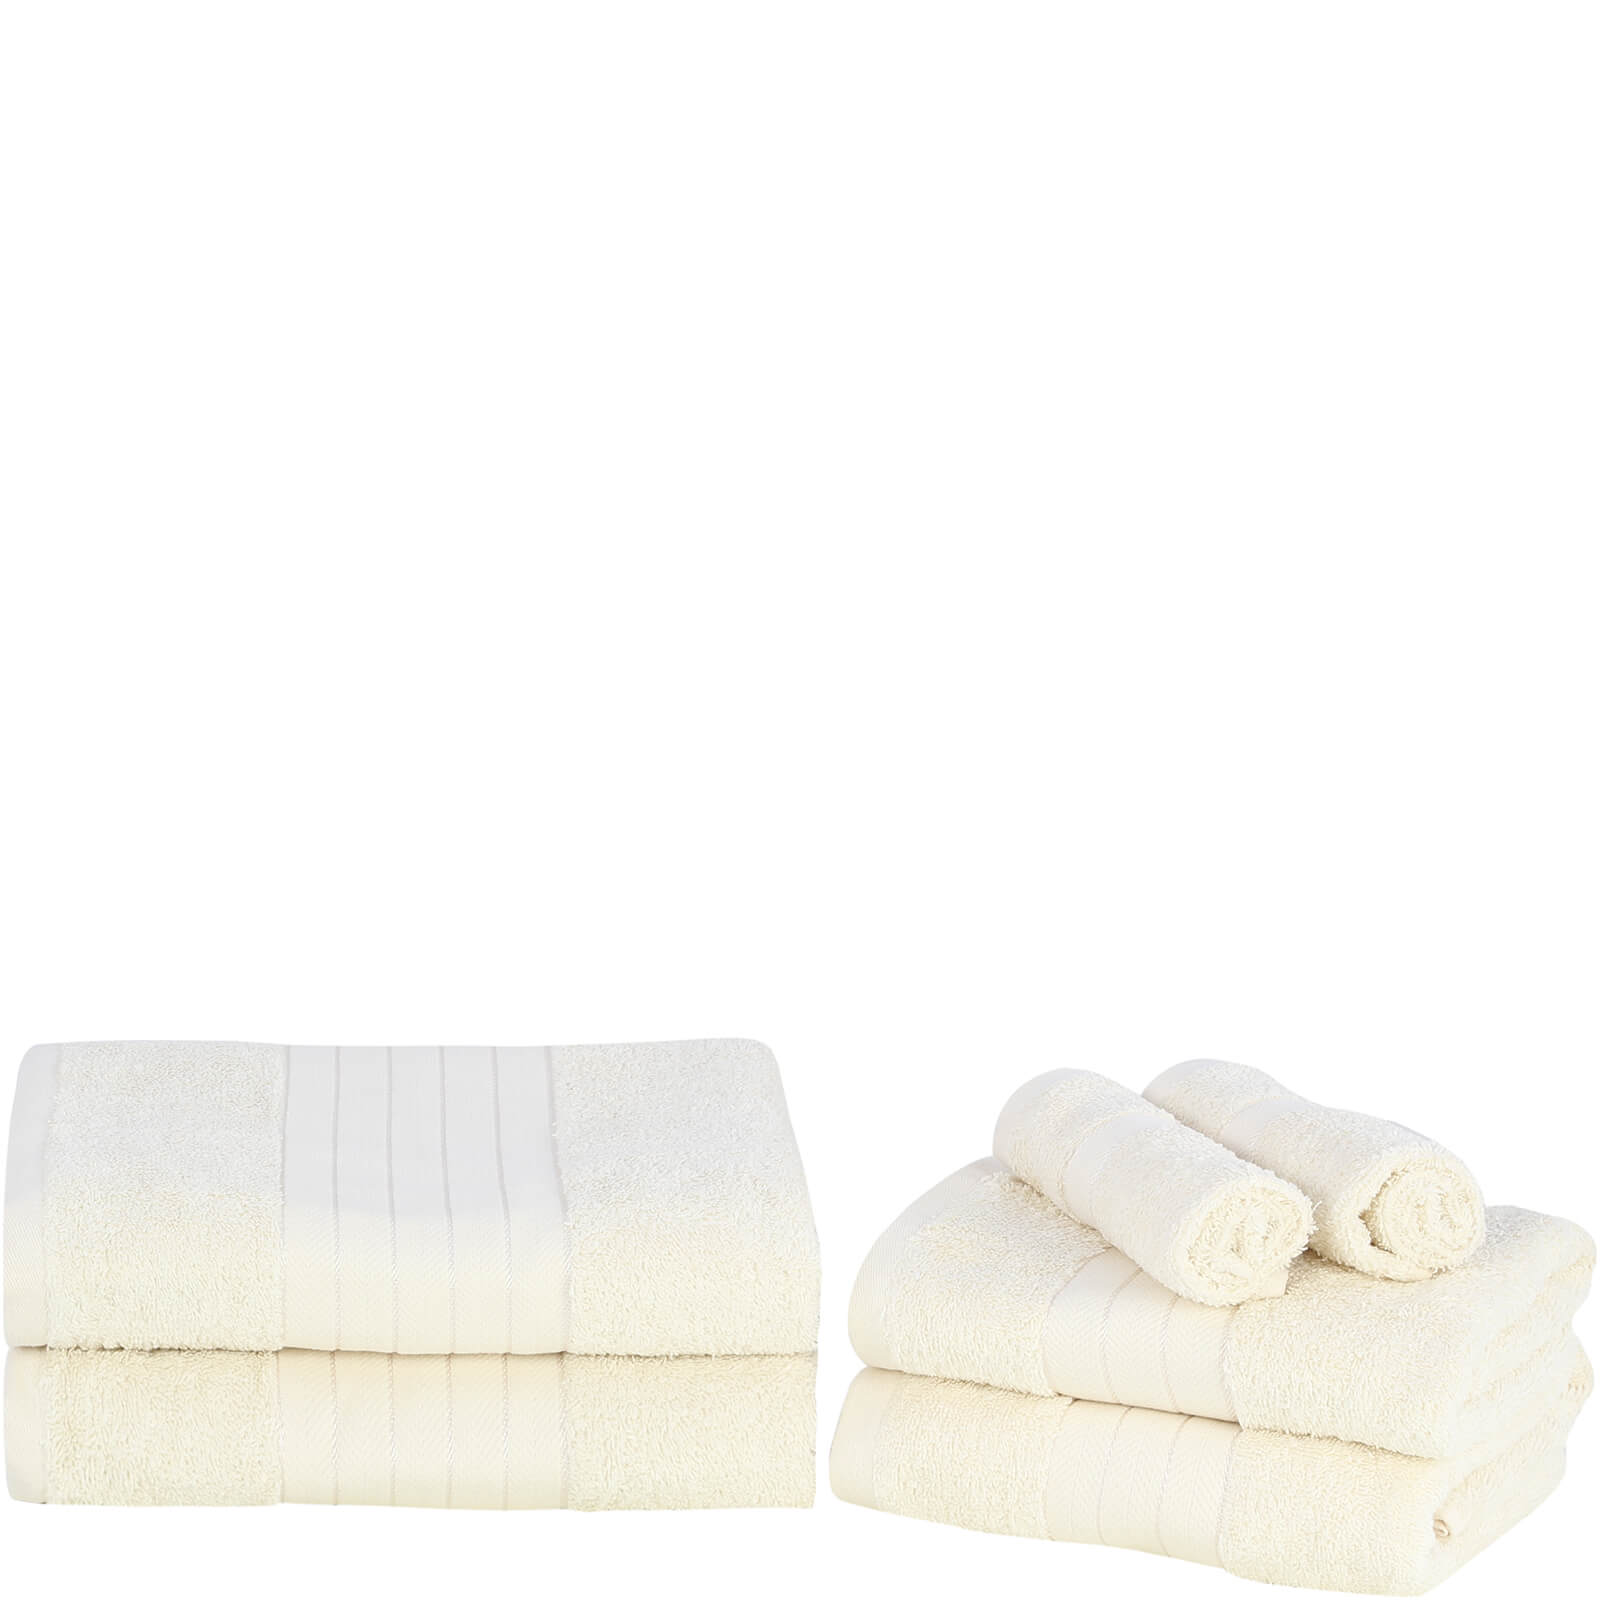 Highams 100% Egyptian Cotton 6 Piece Towel Bale (500 gsm) - Cream